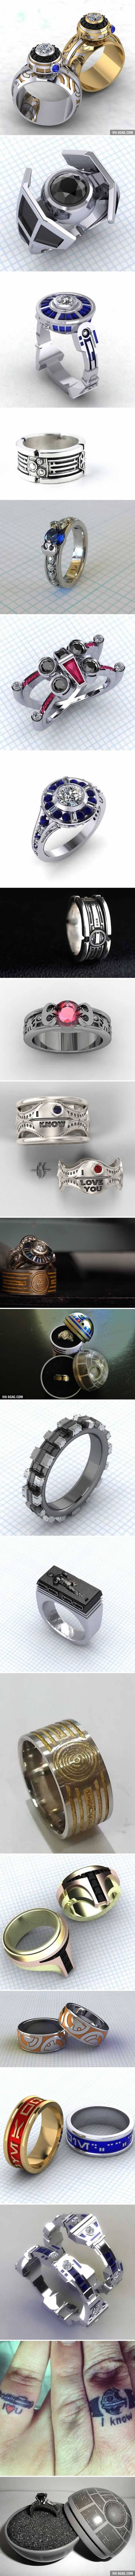 21 Most Romantic Star Wars Wedding Rings